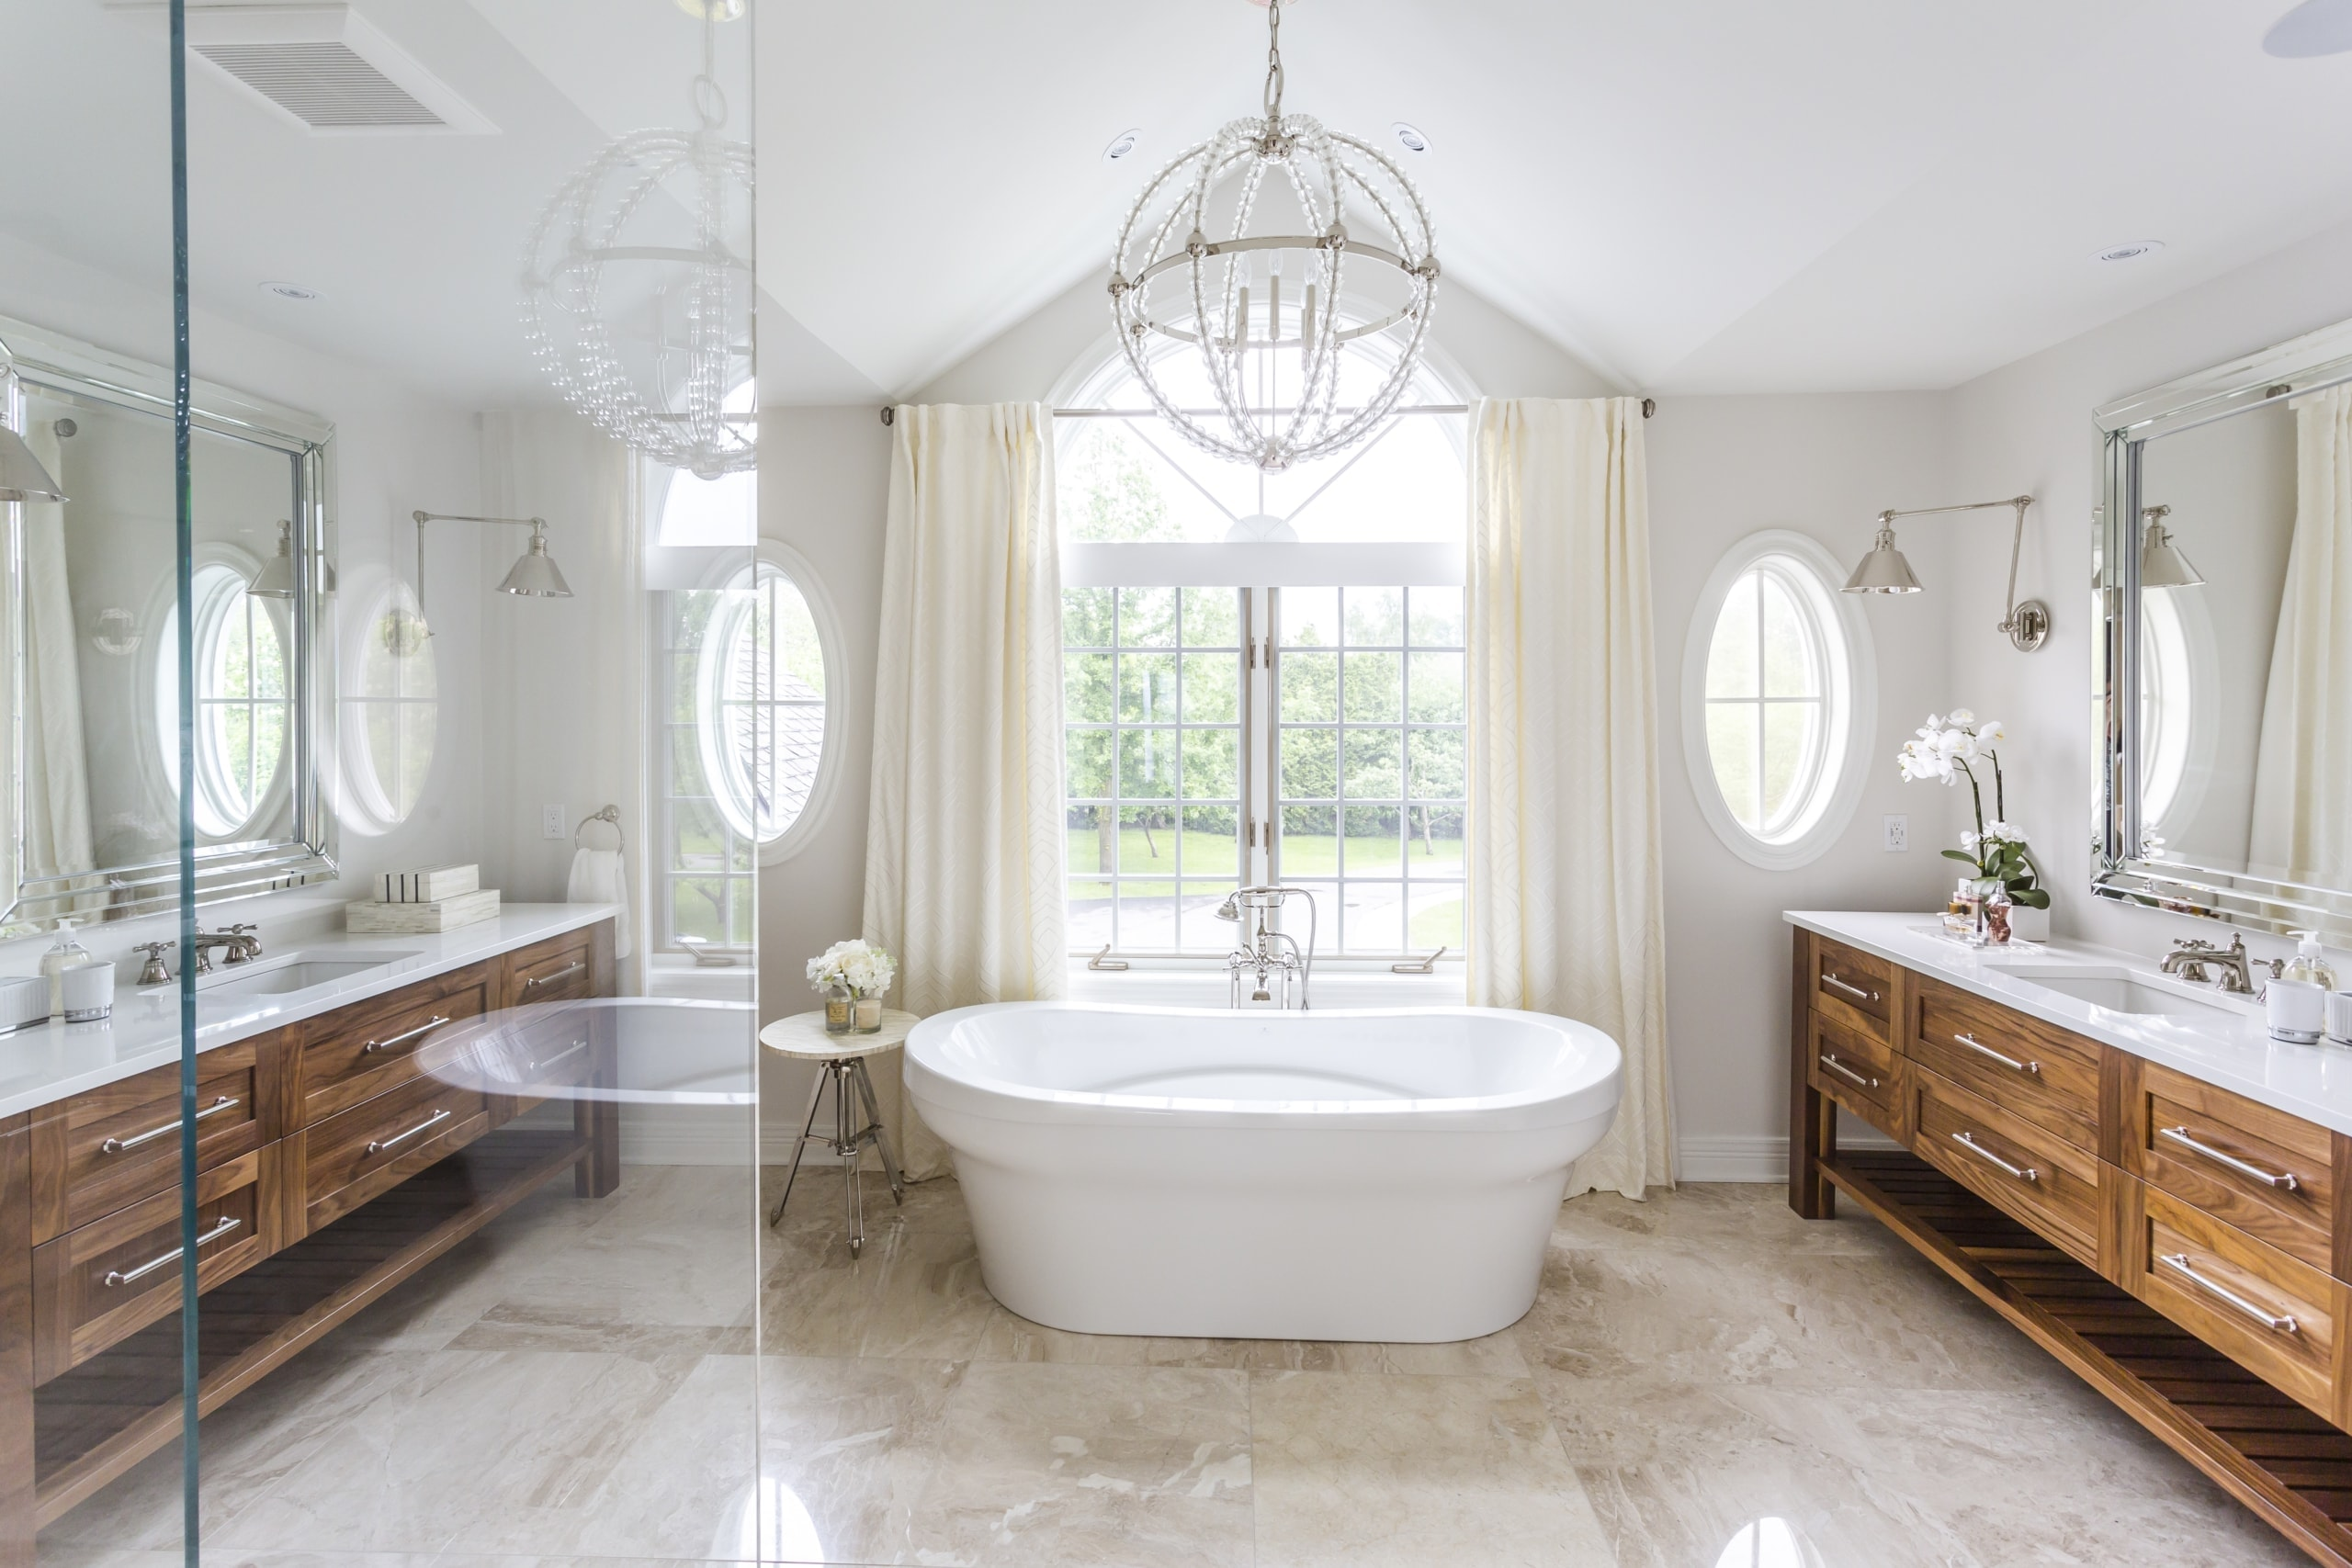 Bathroom with double vanities and soaker tub